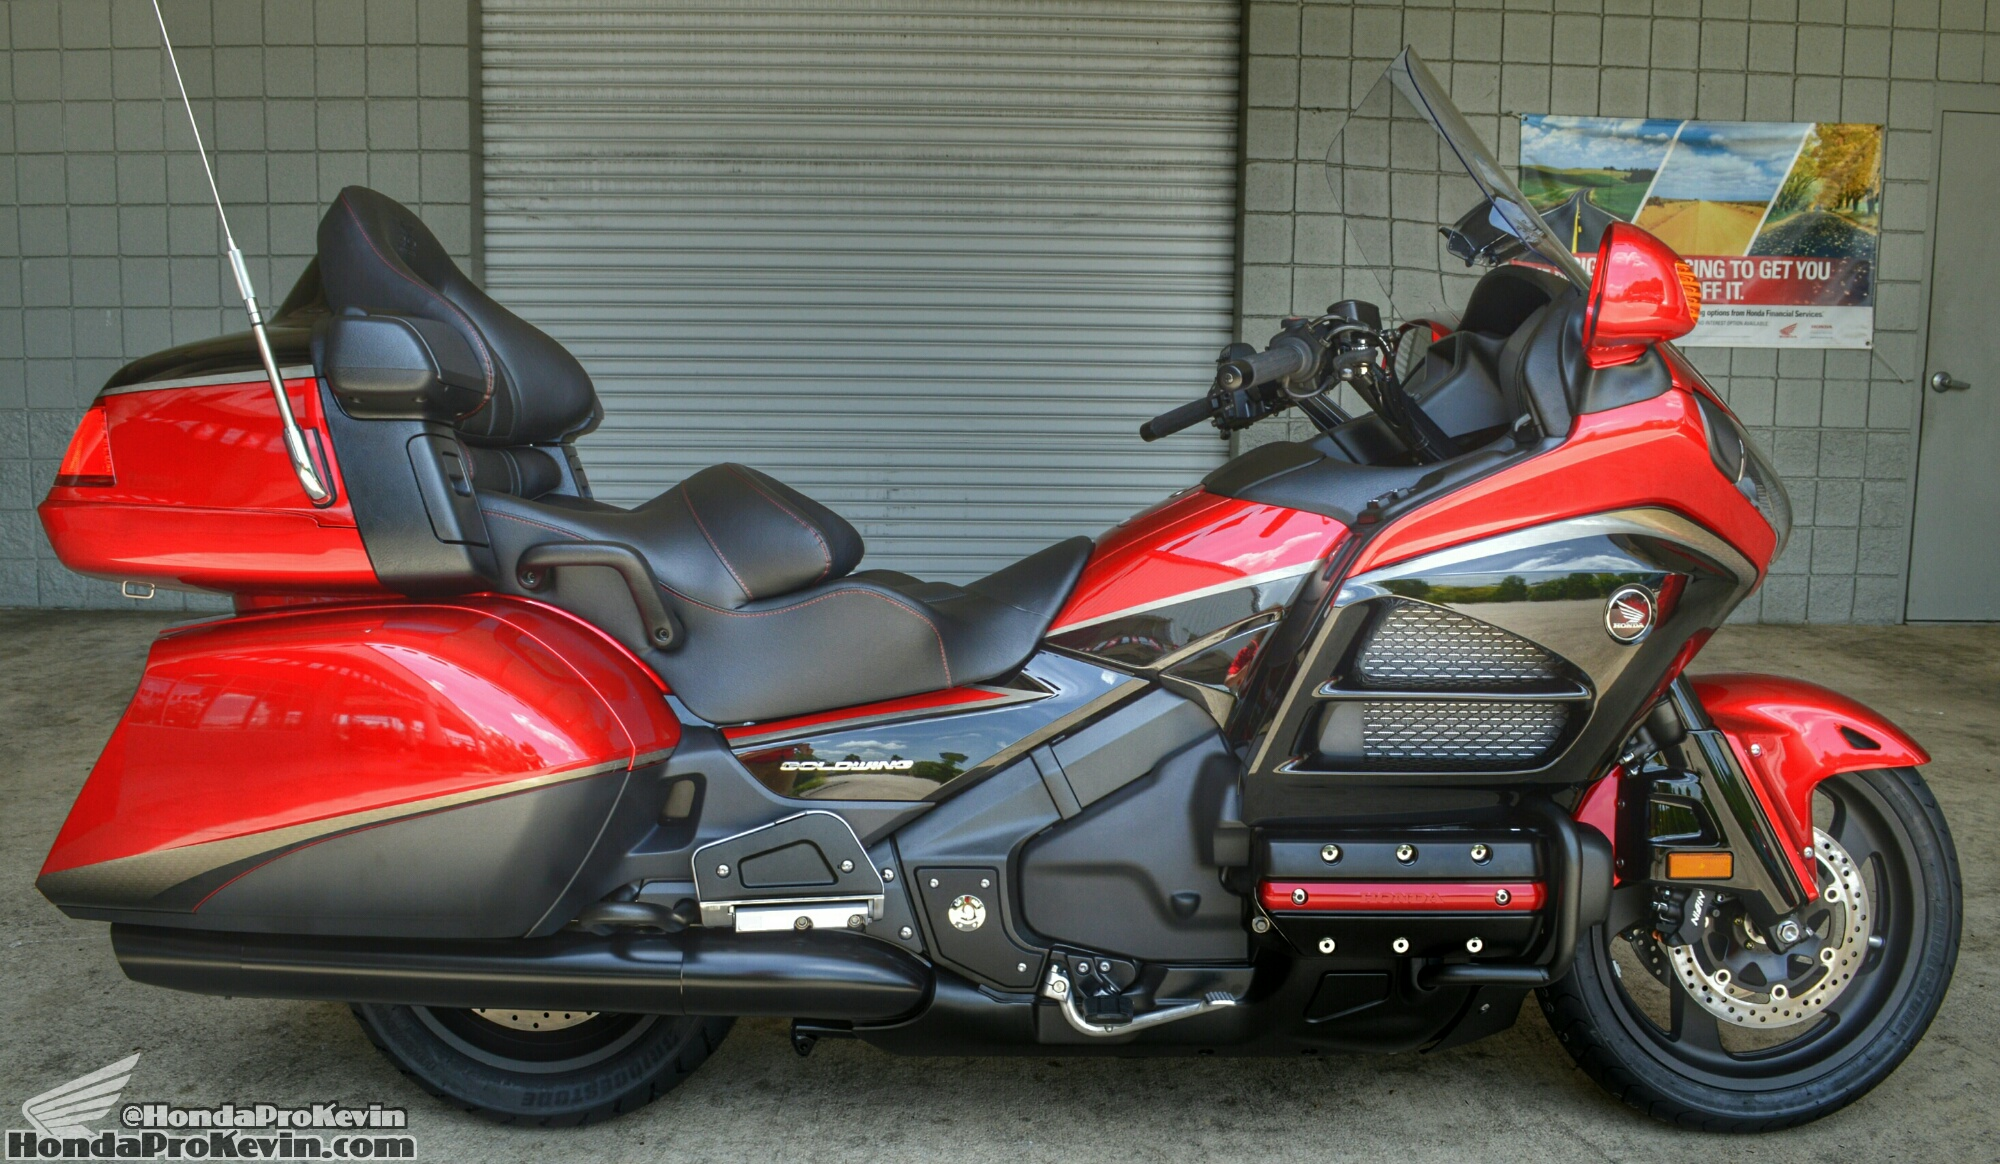 2015 Honda Gold Wing 40th Anniversary - Touring Motorcycle / Bike - Candy Red / Black